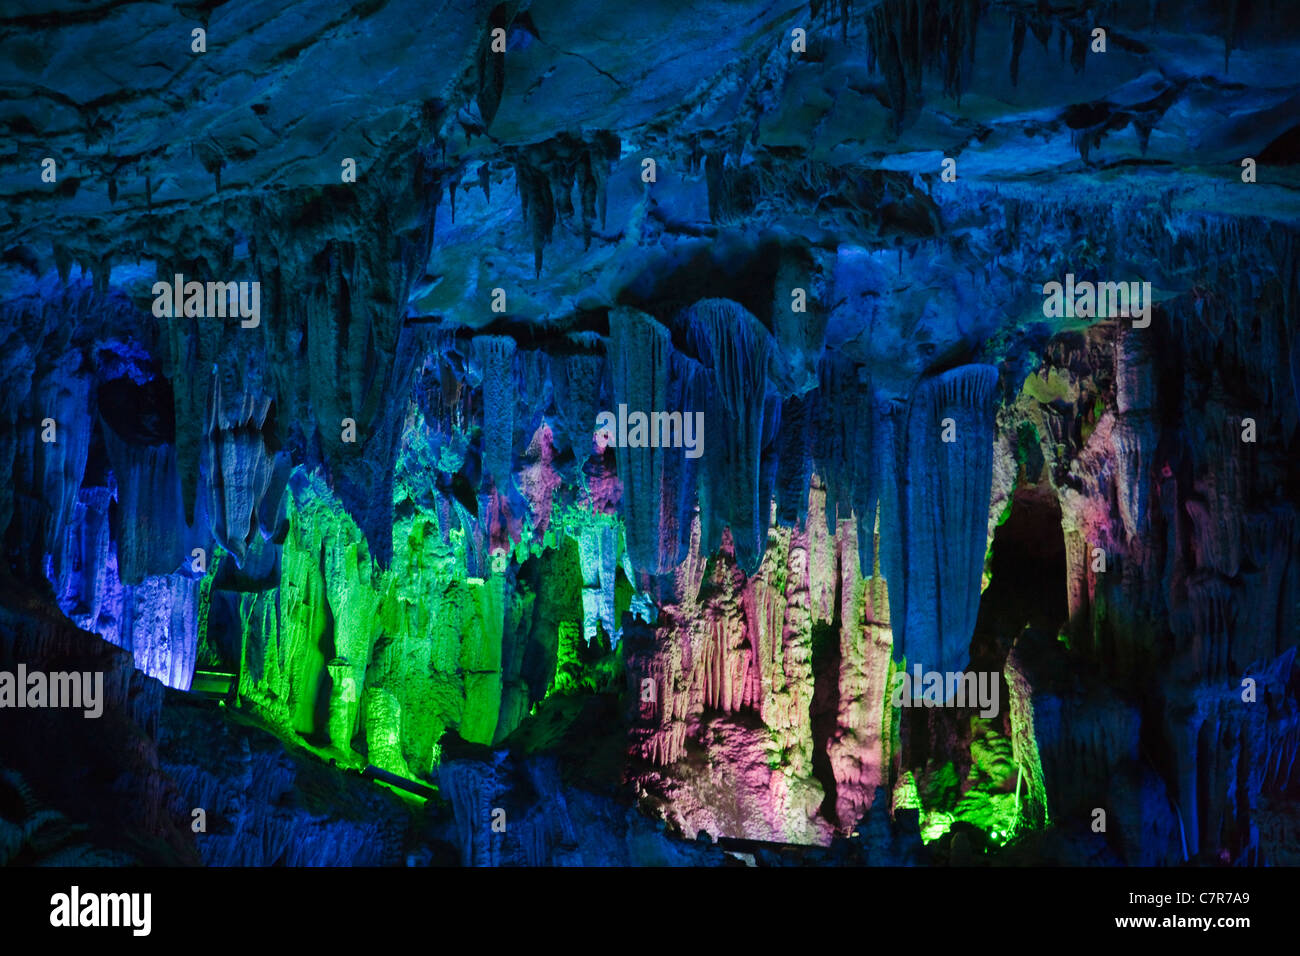 Ludi (Reed Flute) Cave, limestone cave formation, near Guilin, Guangxi Province, China - Stock Image